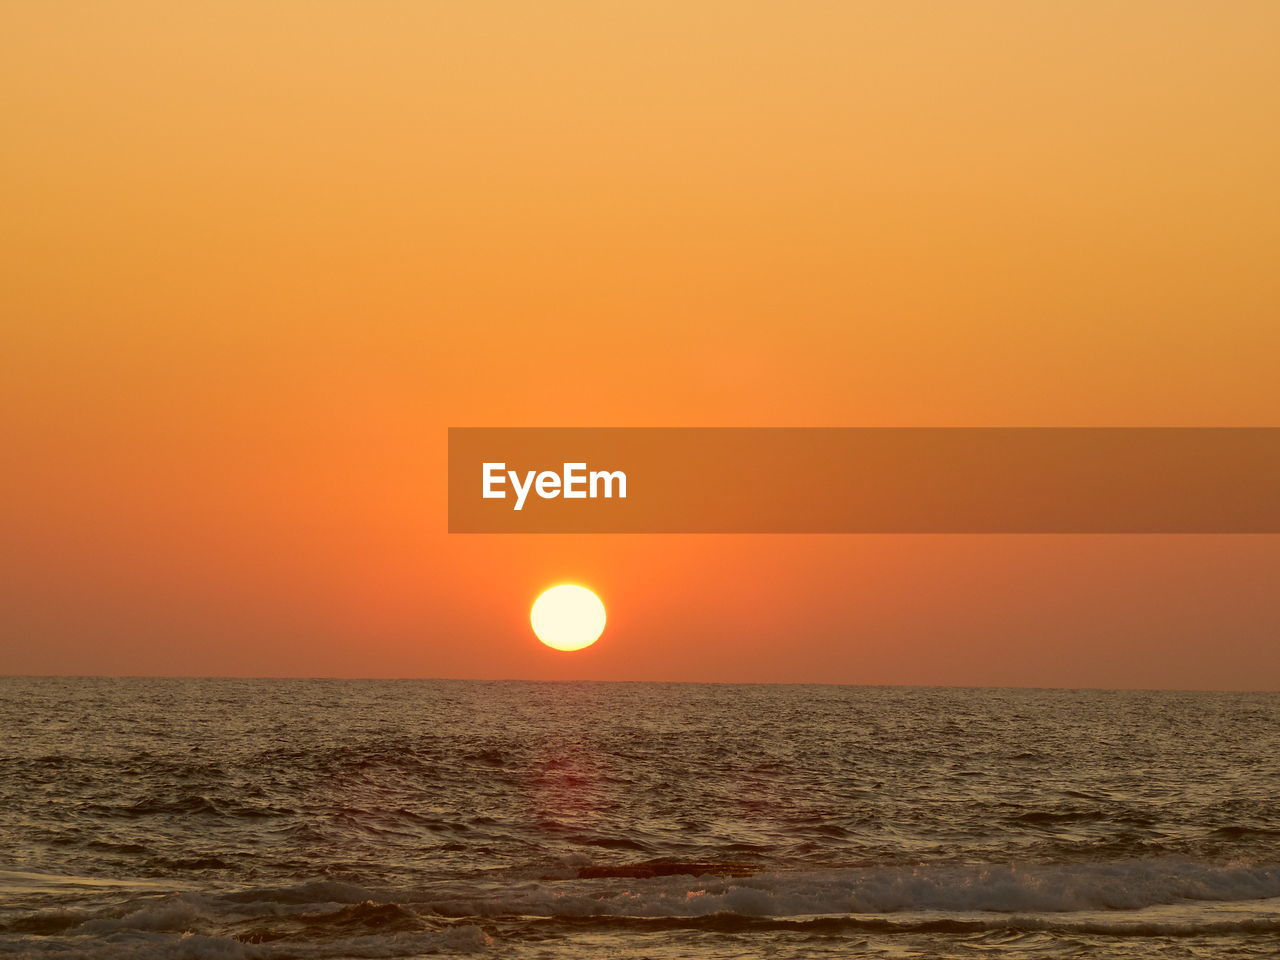 sky, sunset, orange color, sea, horizon over water, scenics - nature, beauty in nature, water, horizon, sun, tranquility, tranquil scene, idyllic, nature, waterfront, clear sky, no people, copy space, circle, outdoors, eclipse